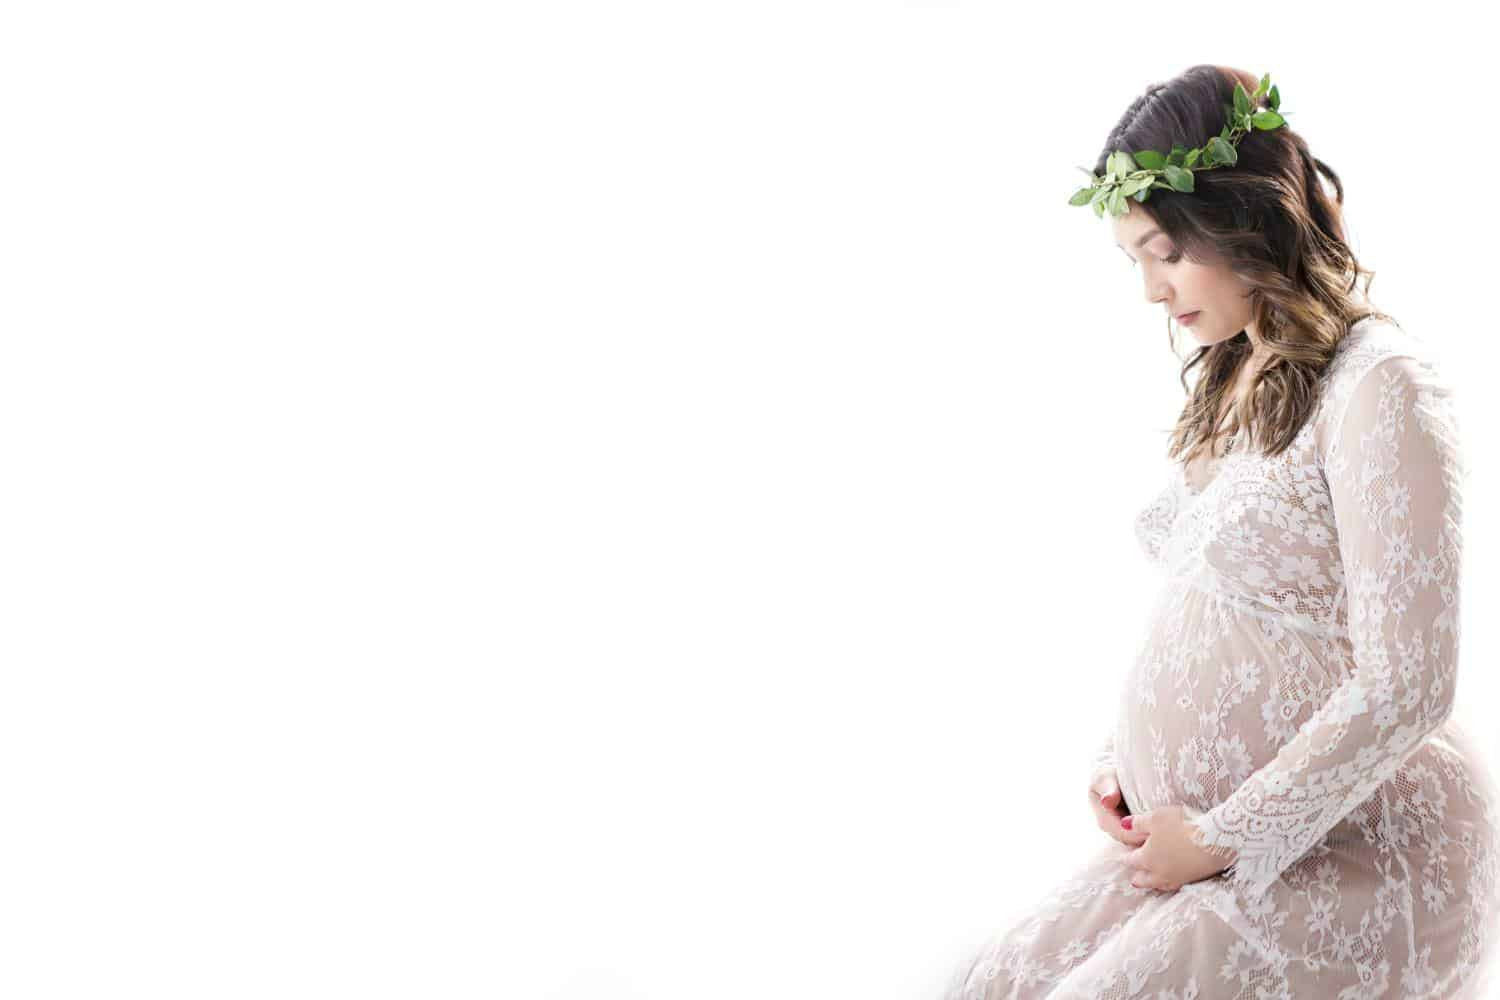 Pregnant woman in a white dress on a white background